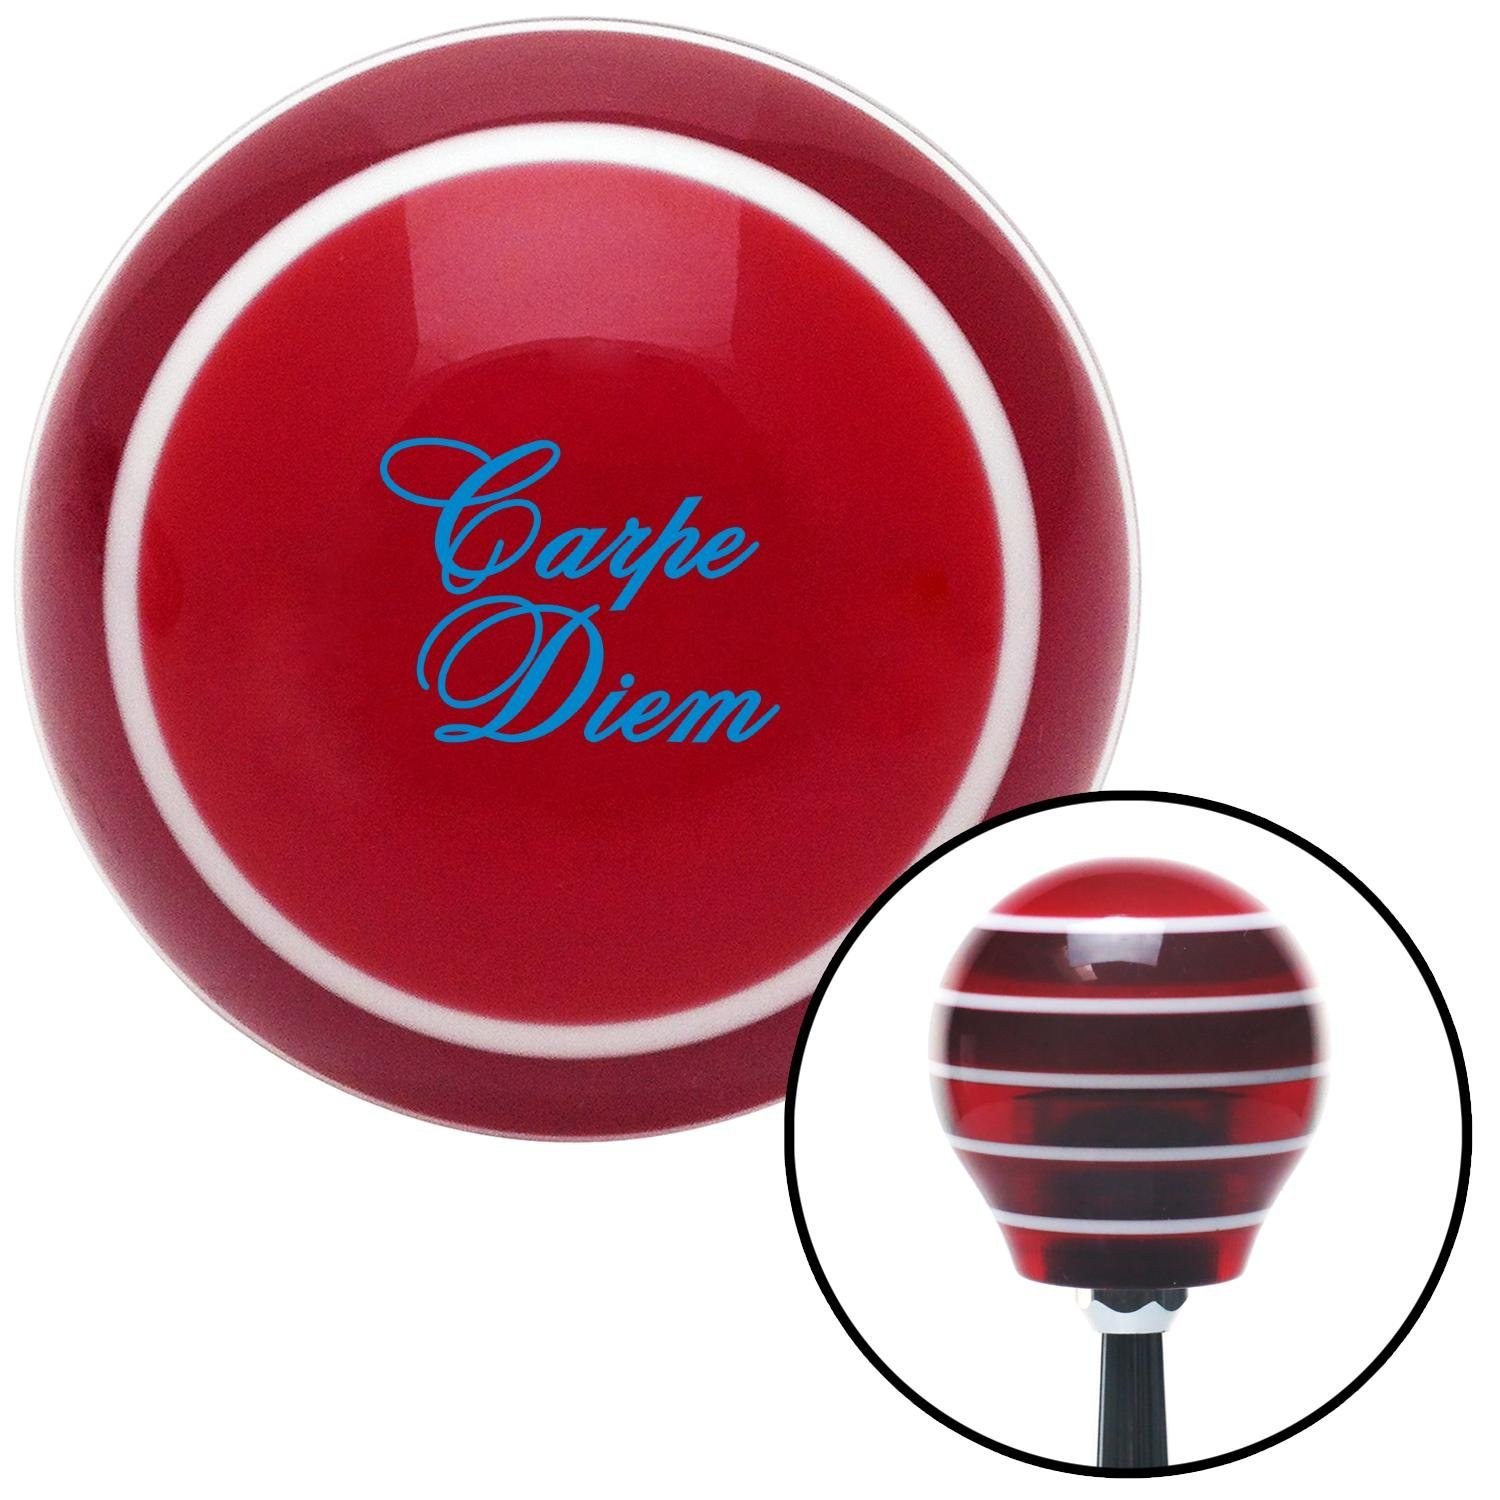 American Shifter 273877 Shift Knob Blue Carpe Diem Red Stripe with M16 x 1.5 Insert